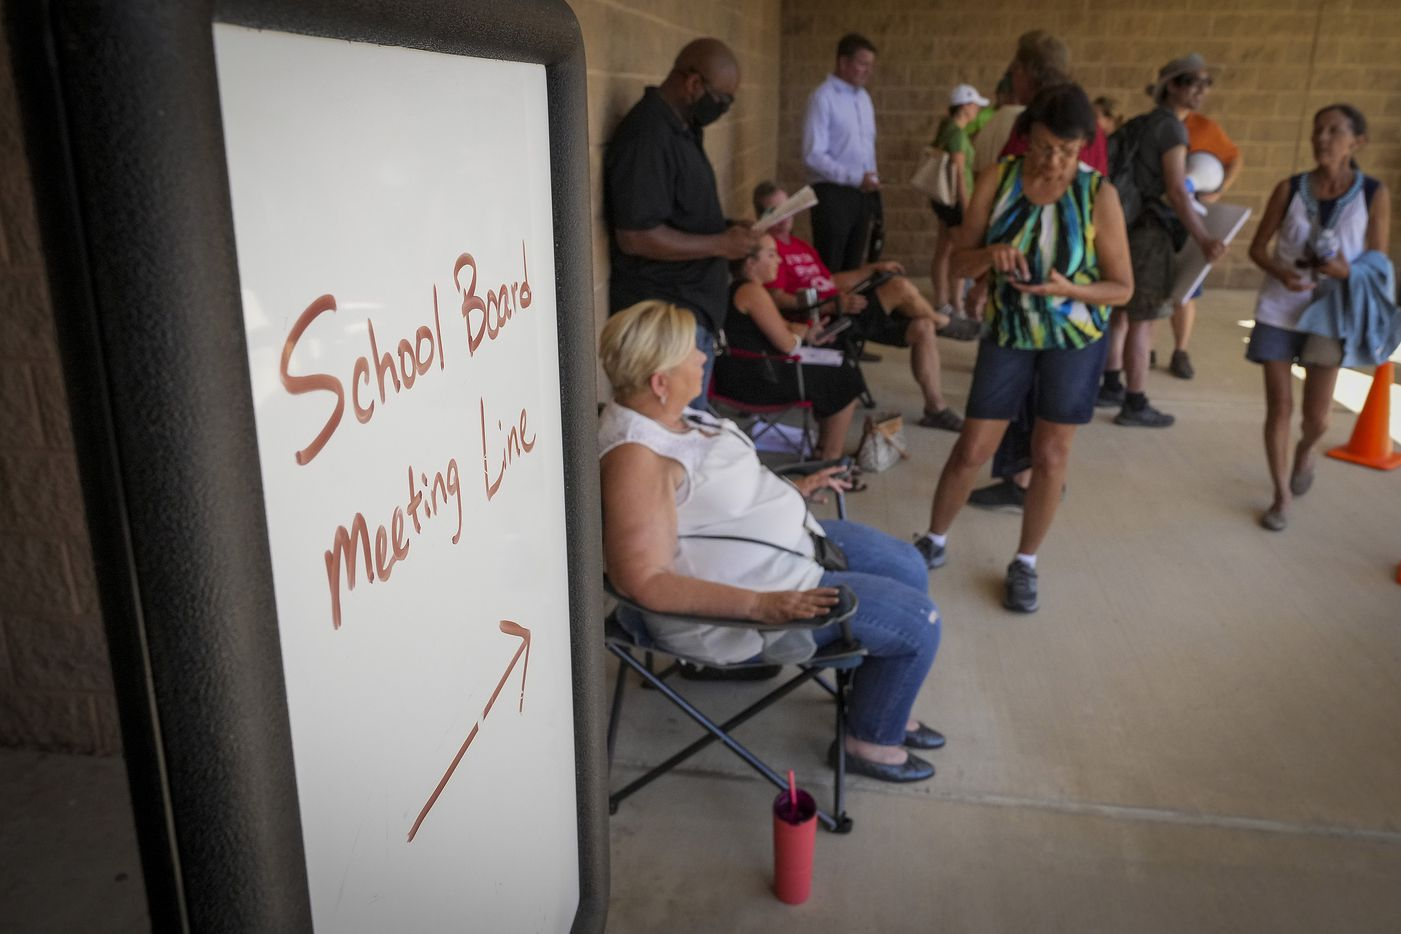 People wait in line to enter the Carroll ISD school board meeting on Monday, Aug. 23, 2021, in Southlake, Texas. (Smiley N. Pool/The Dallas Morning News)